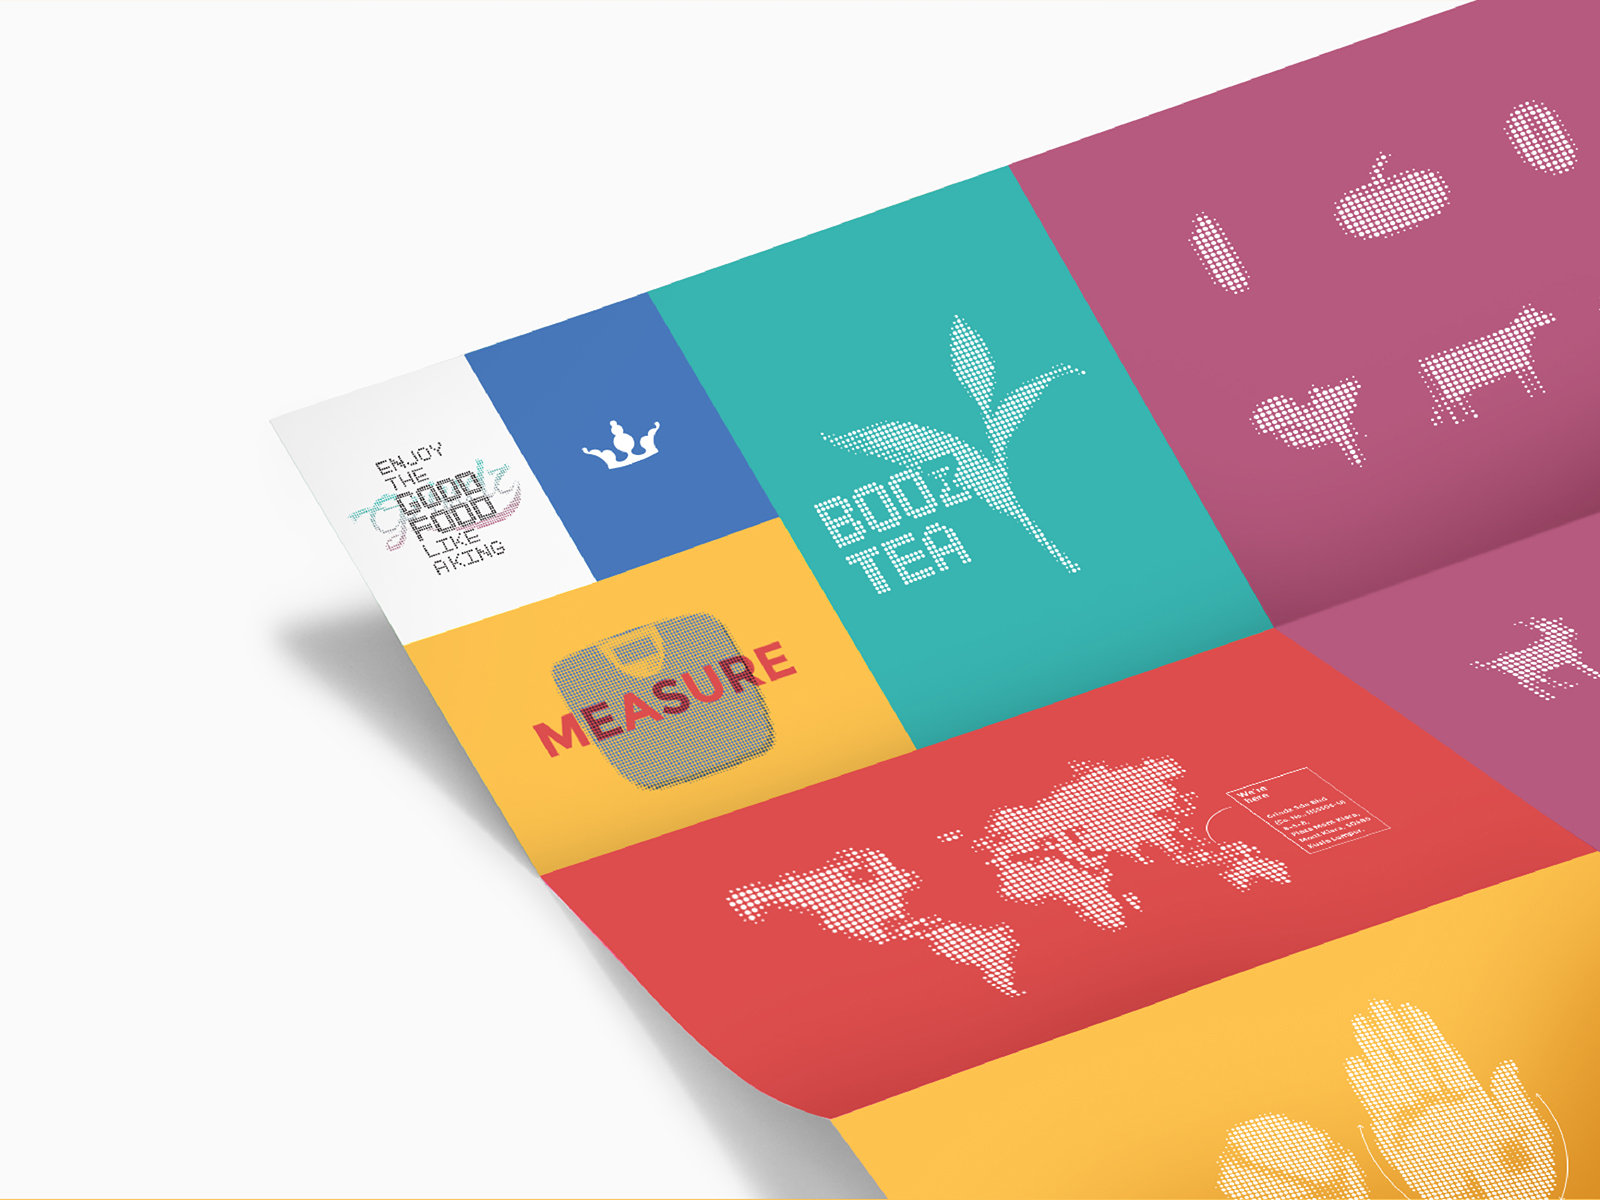 Grindz brand illustration featuring tea leaves, world map, hand and various food